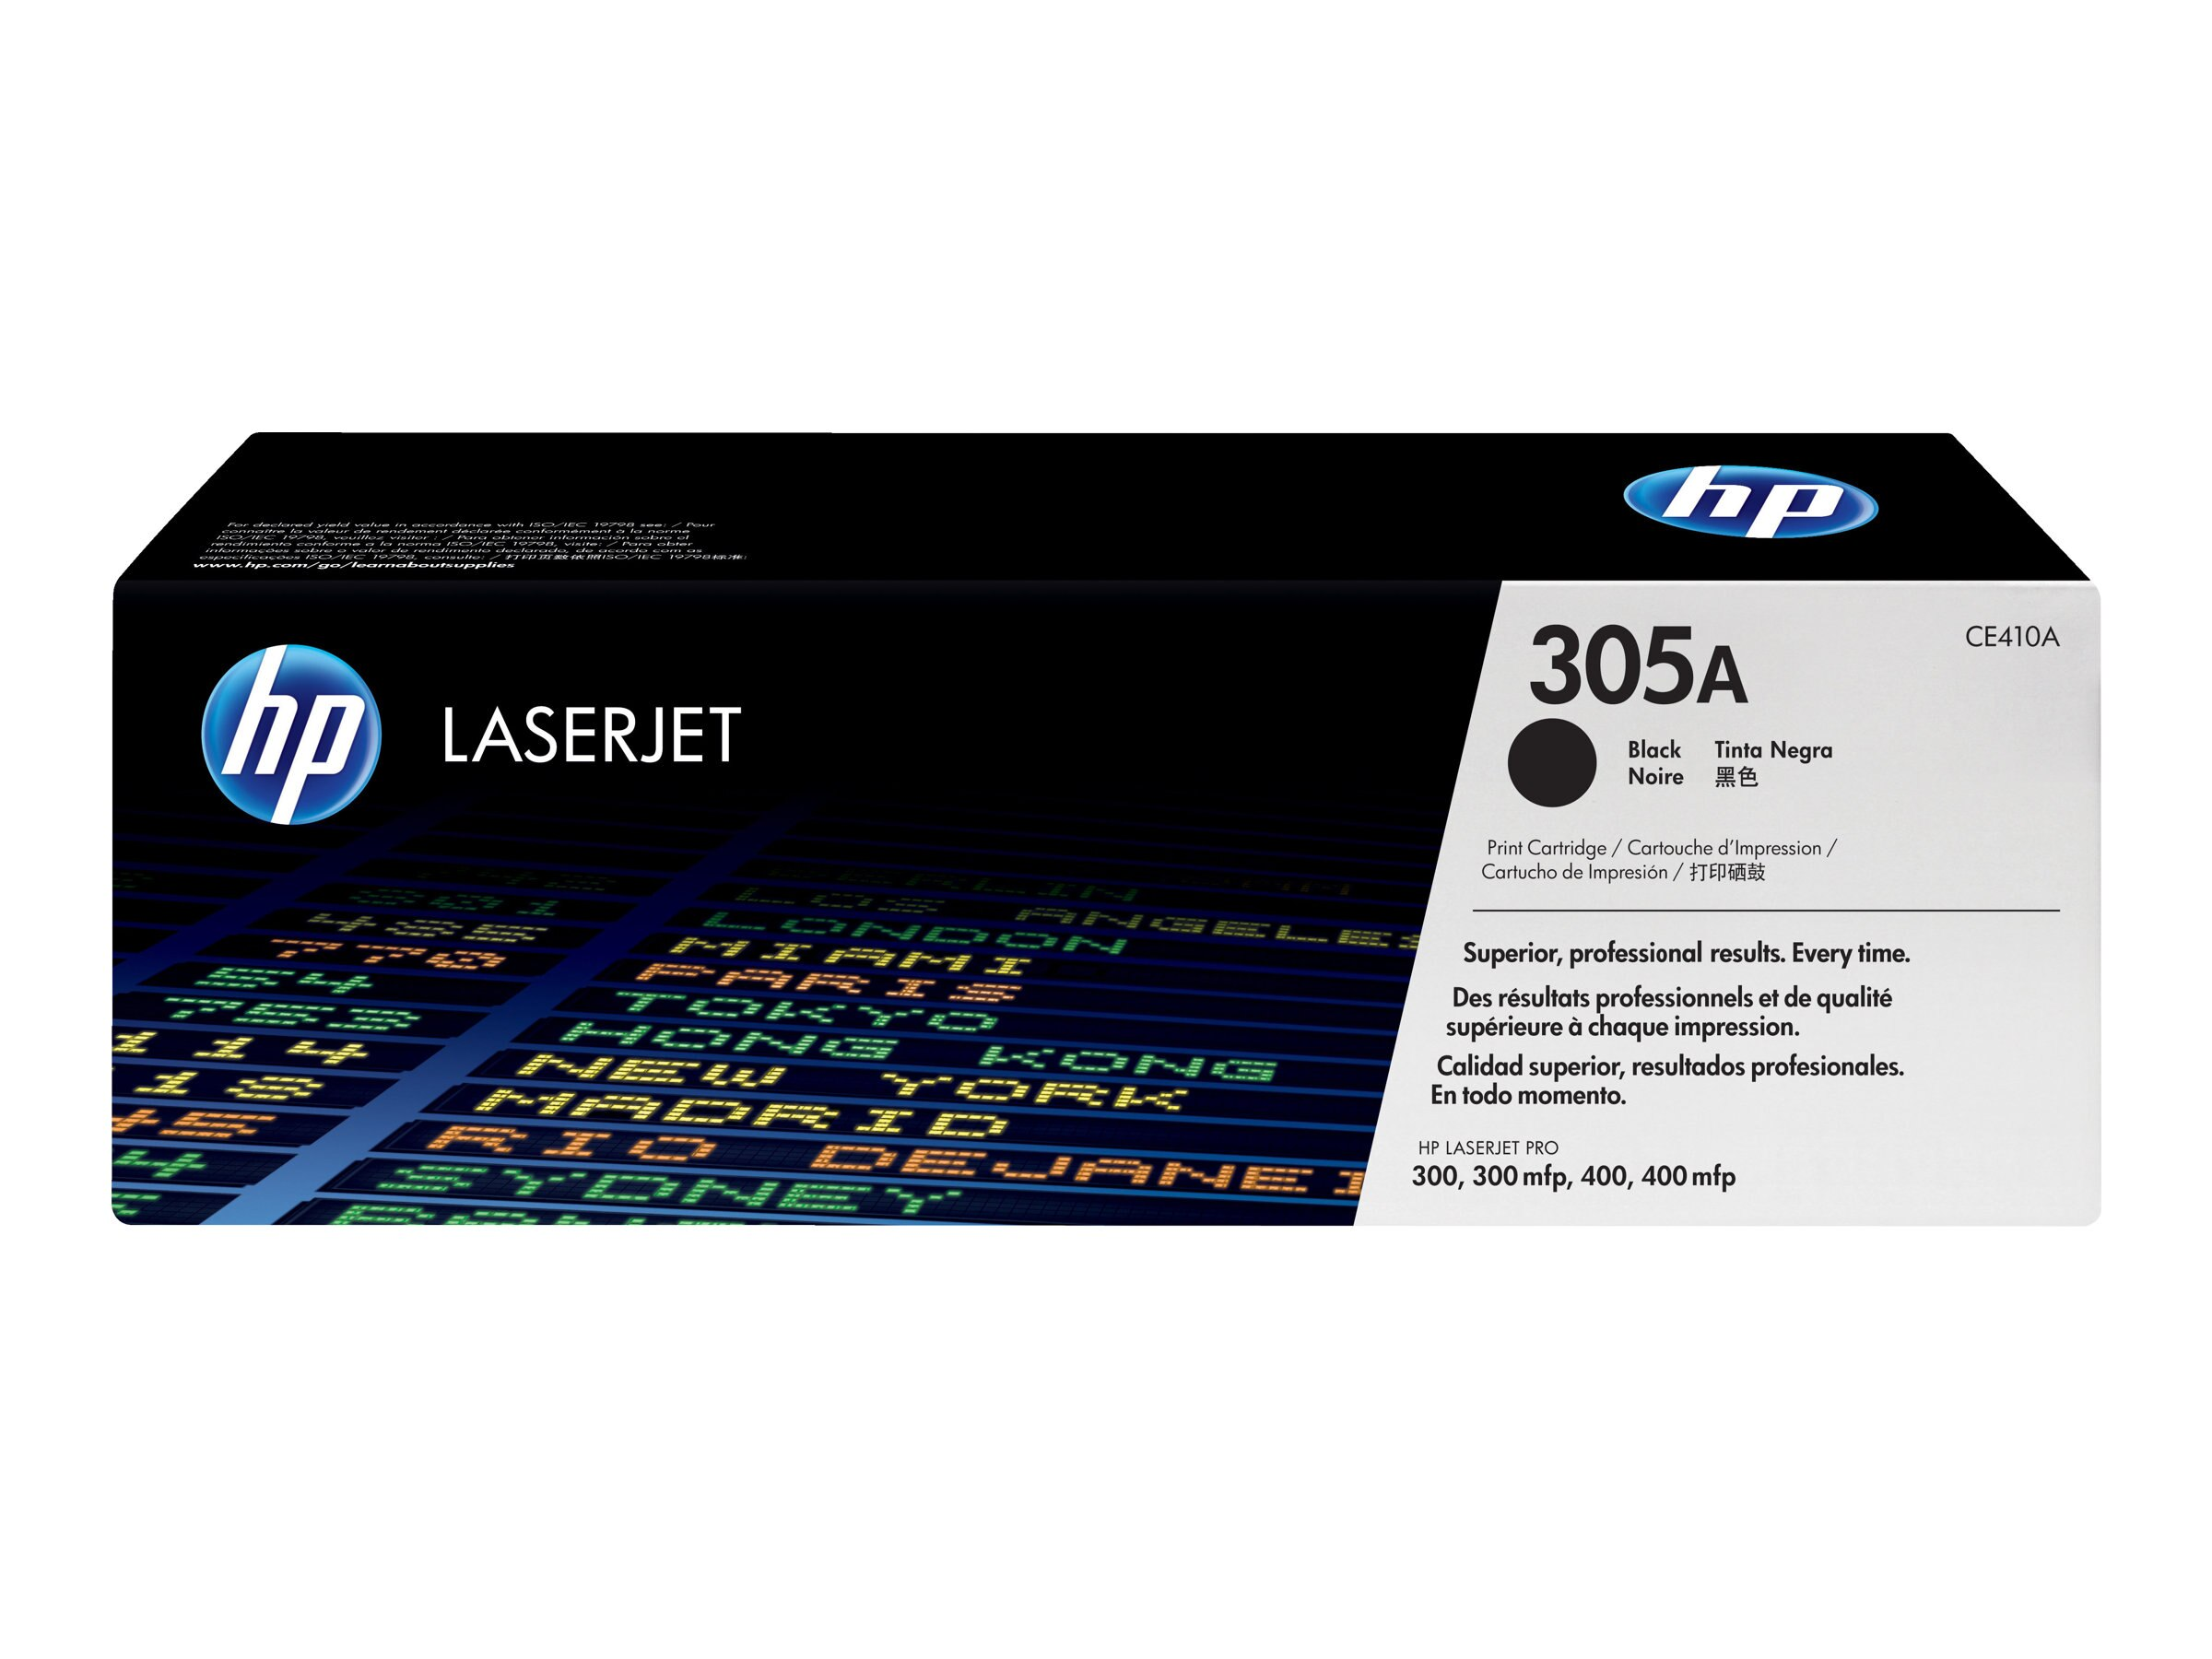 HP 305A Black Toner Cartridge for HP LaserJet Pro Printers (TAA Compliant)